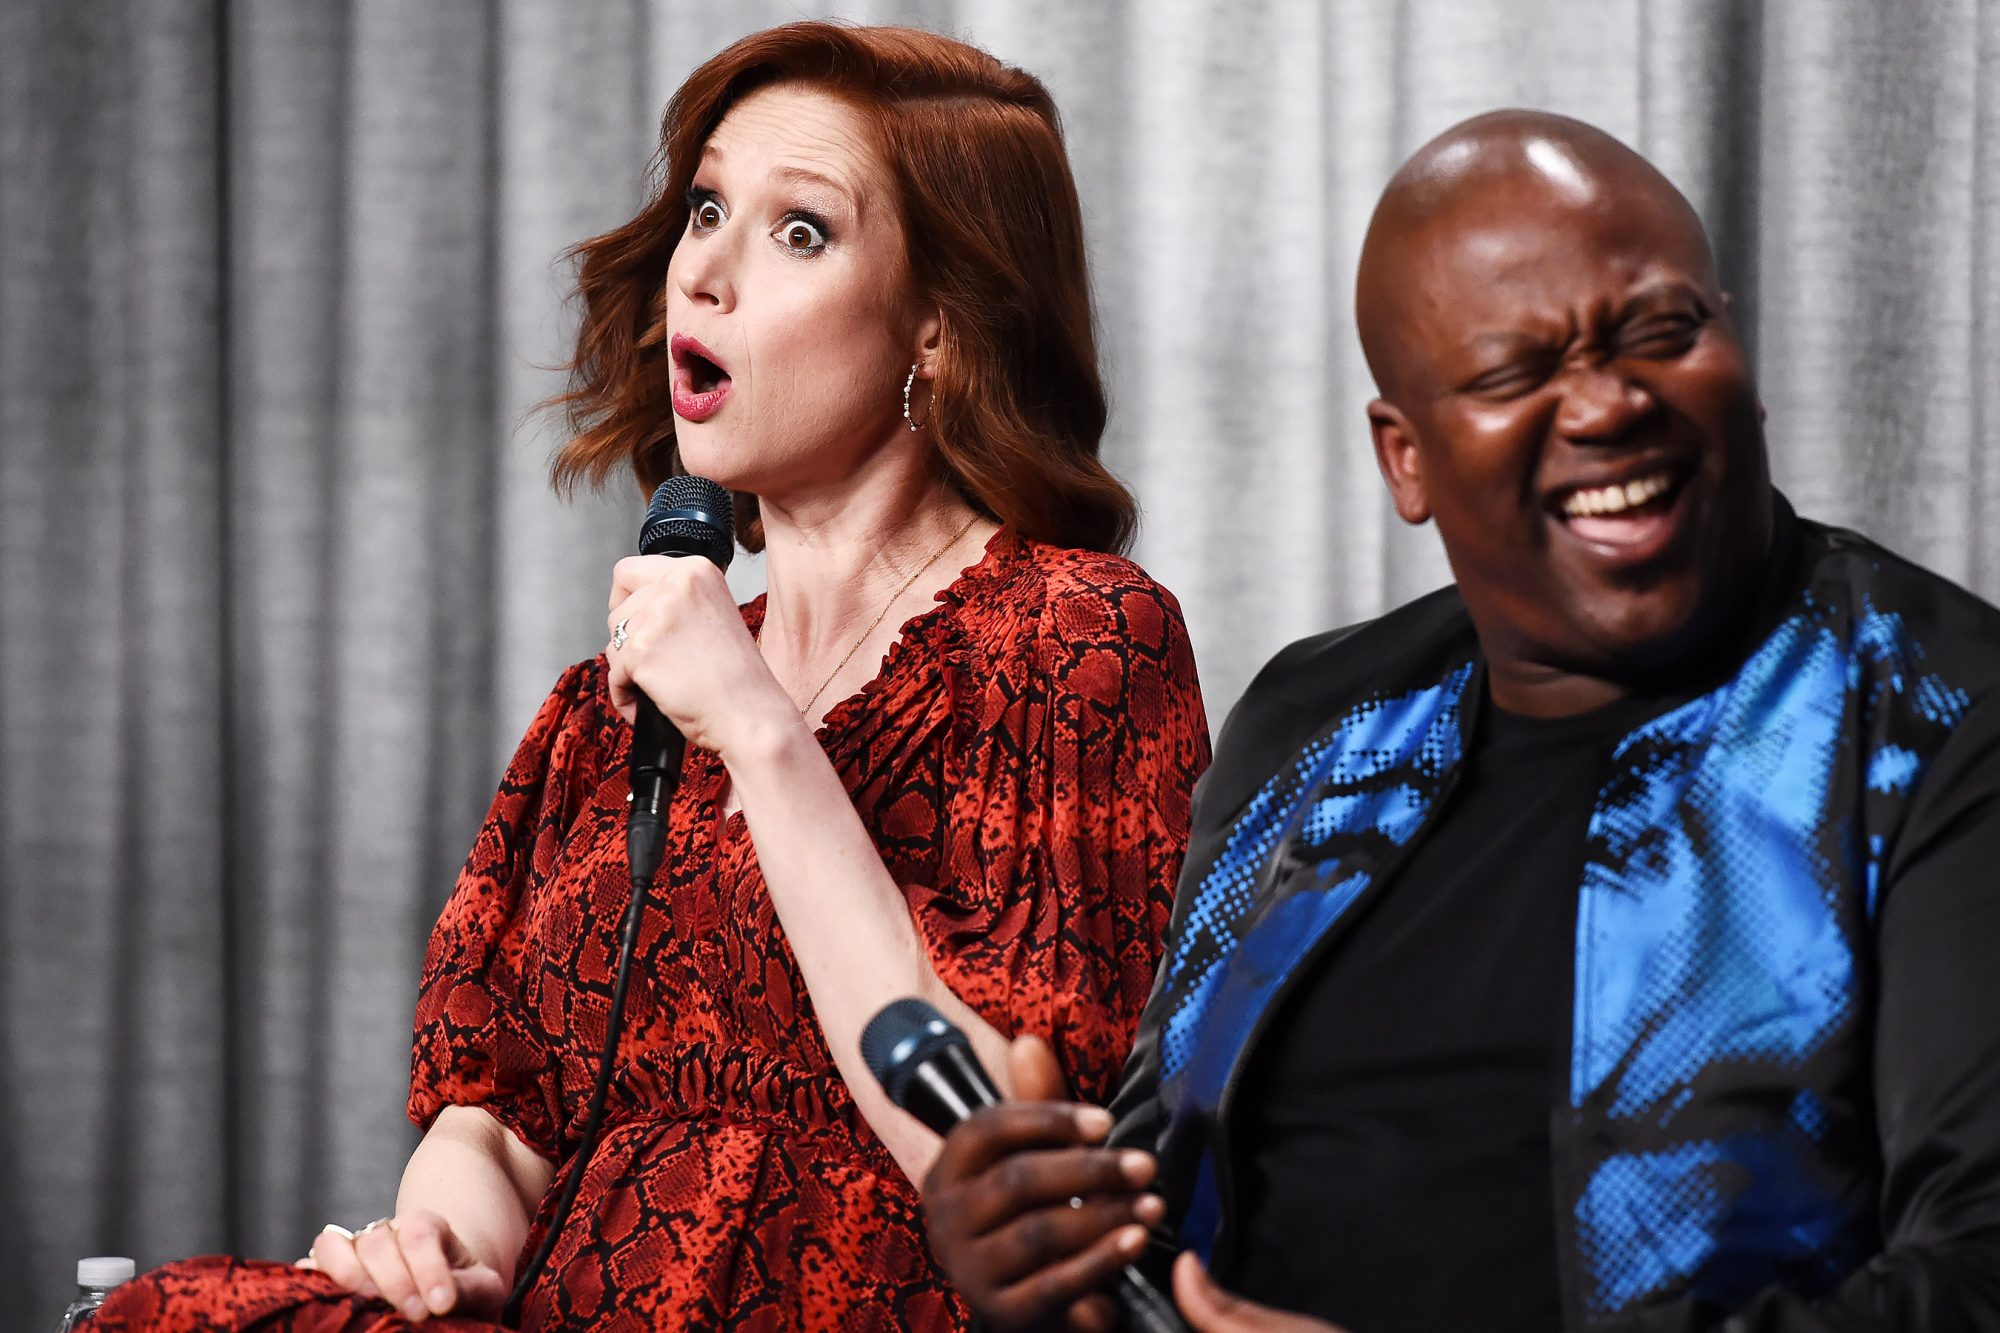 Ellie Kemper (L) and actor Tituss Burgess